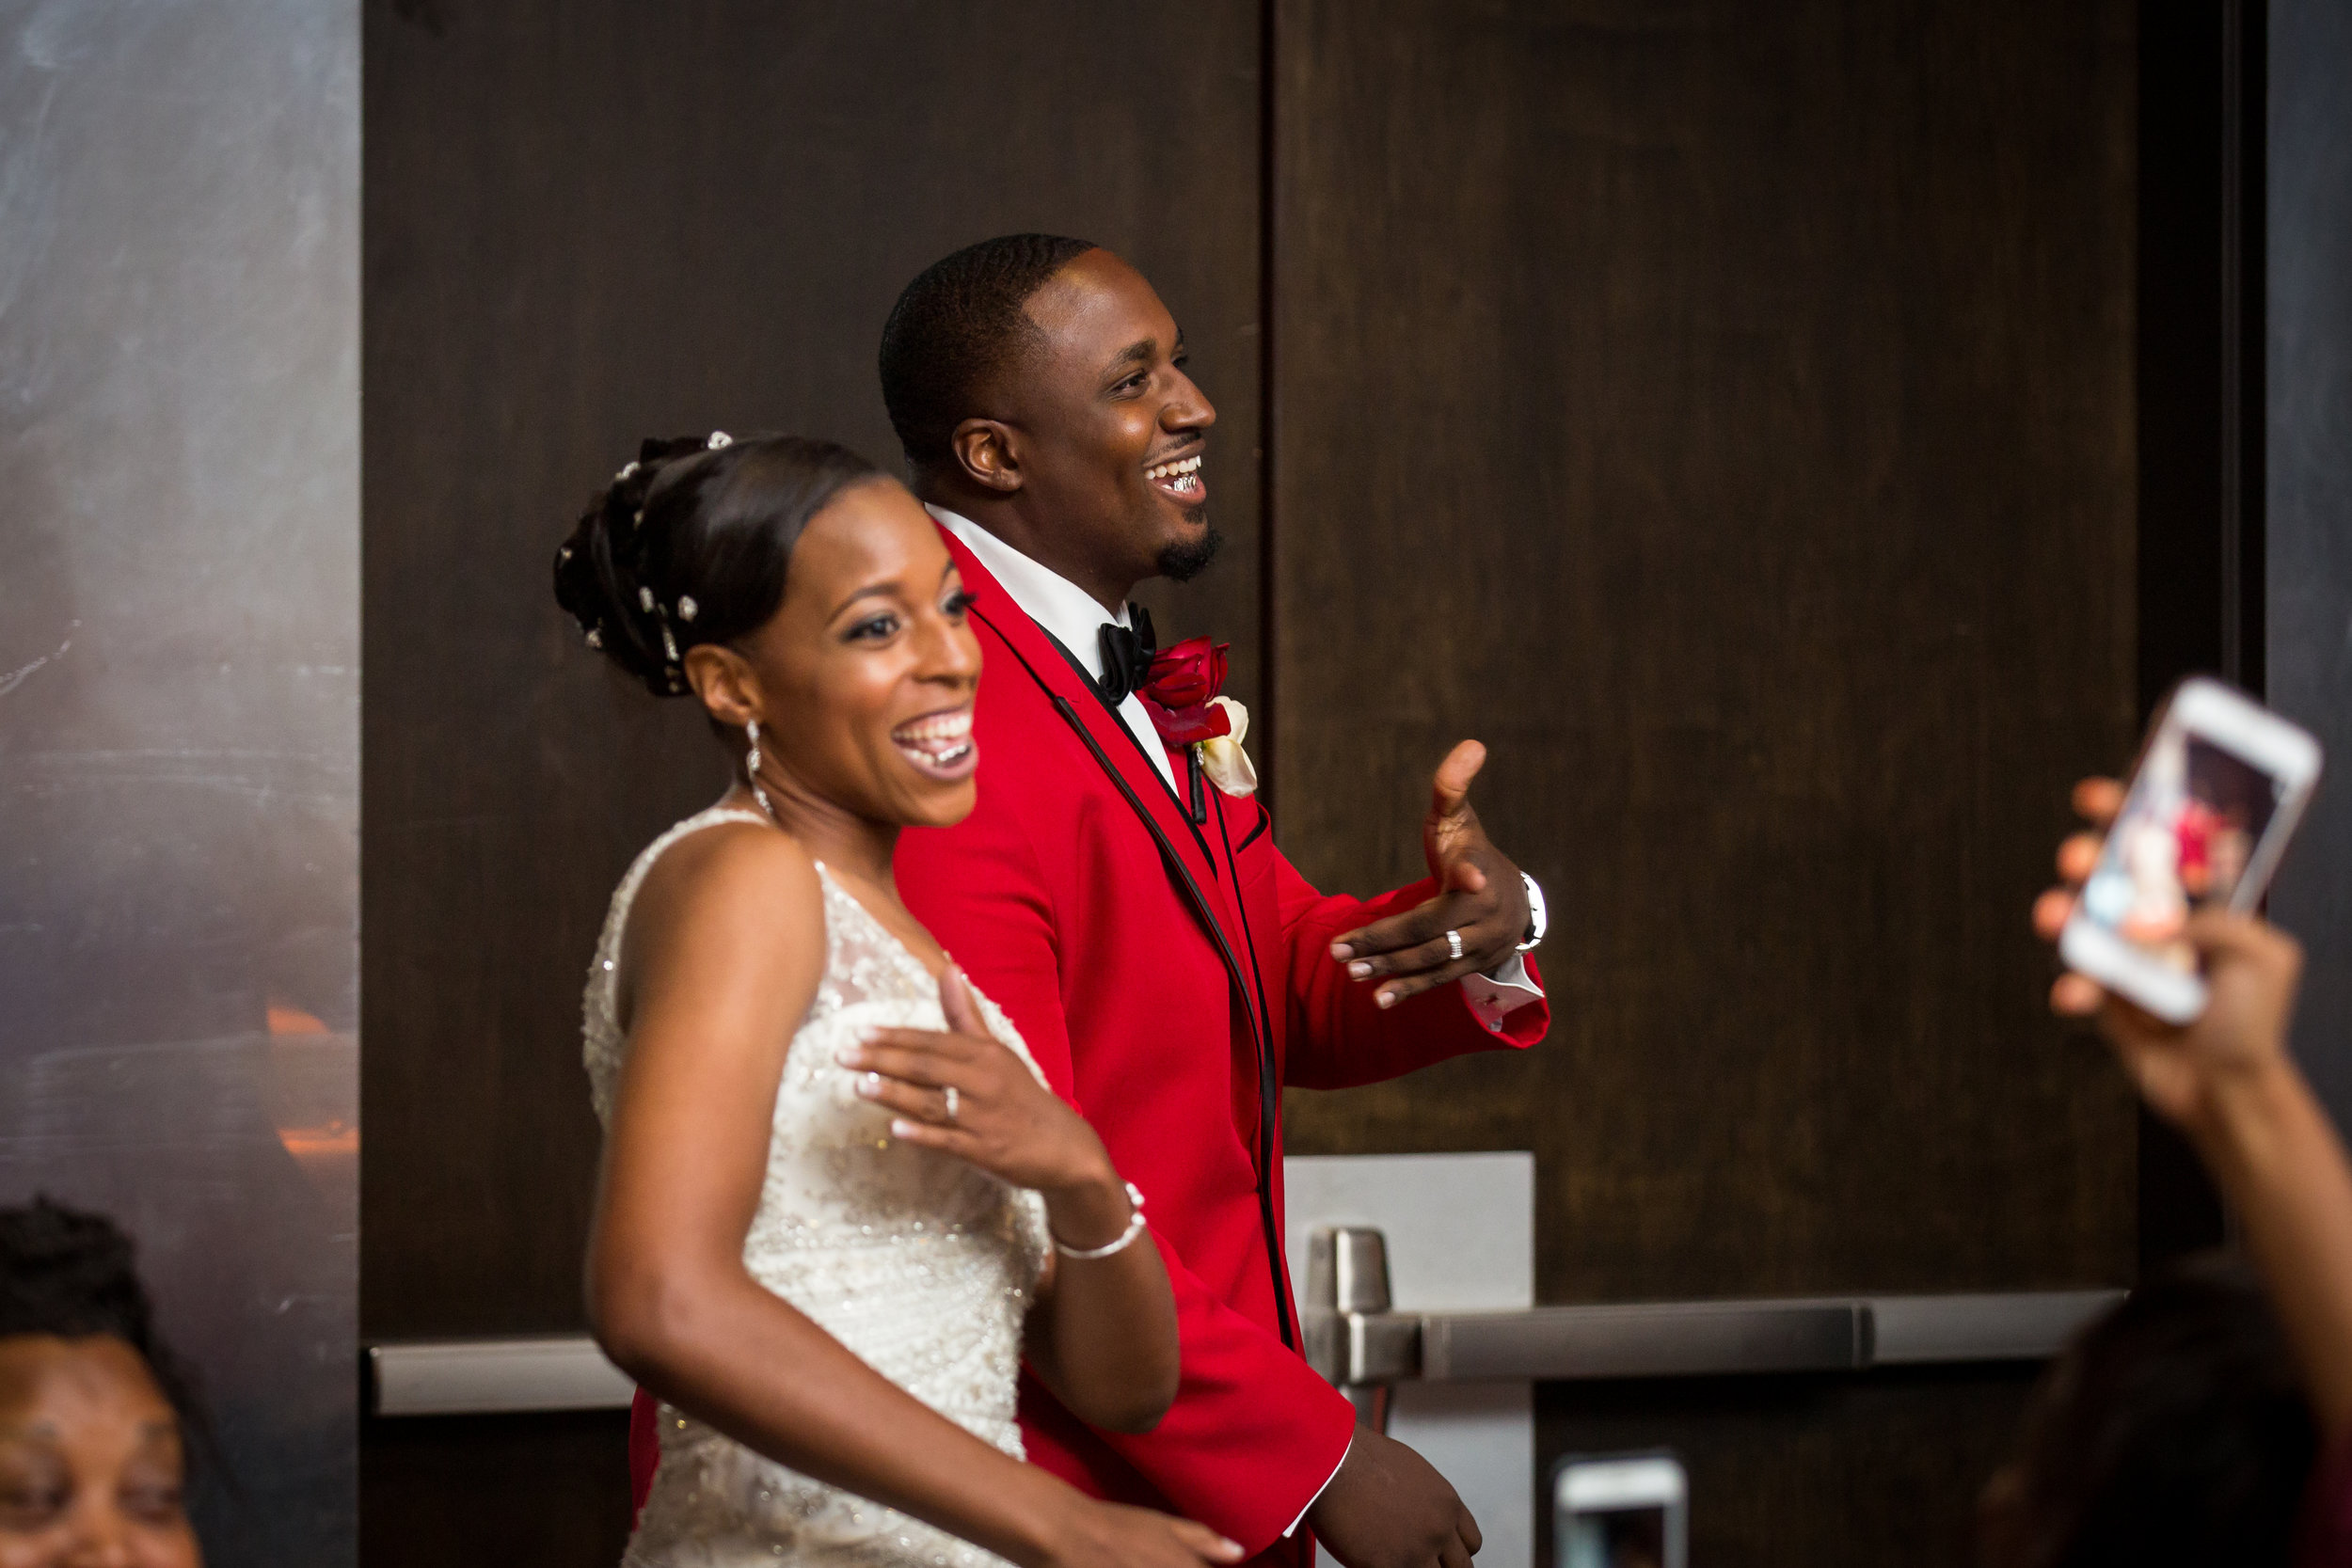 Twelve-Hotel-Ashley-David-Wedding-Engagement-Photography-Cains-Camera-Atlanta-Photography-458.jpg